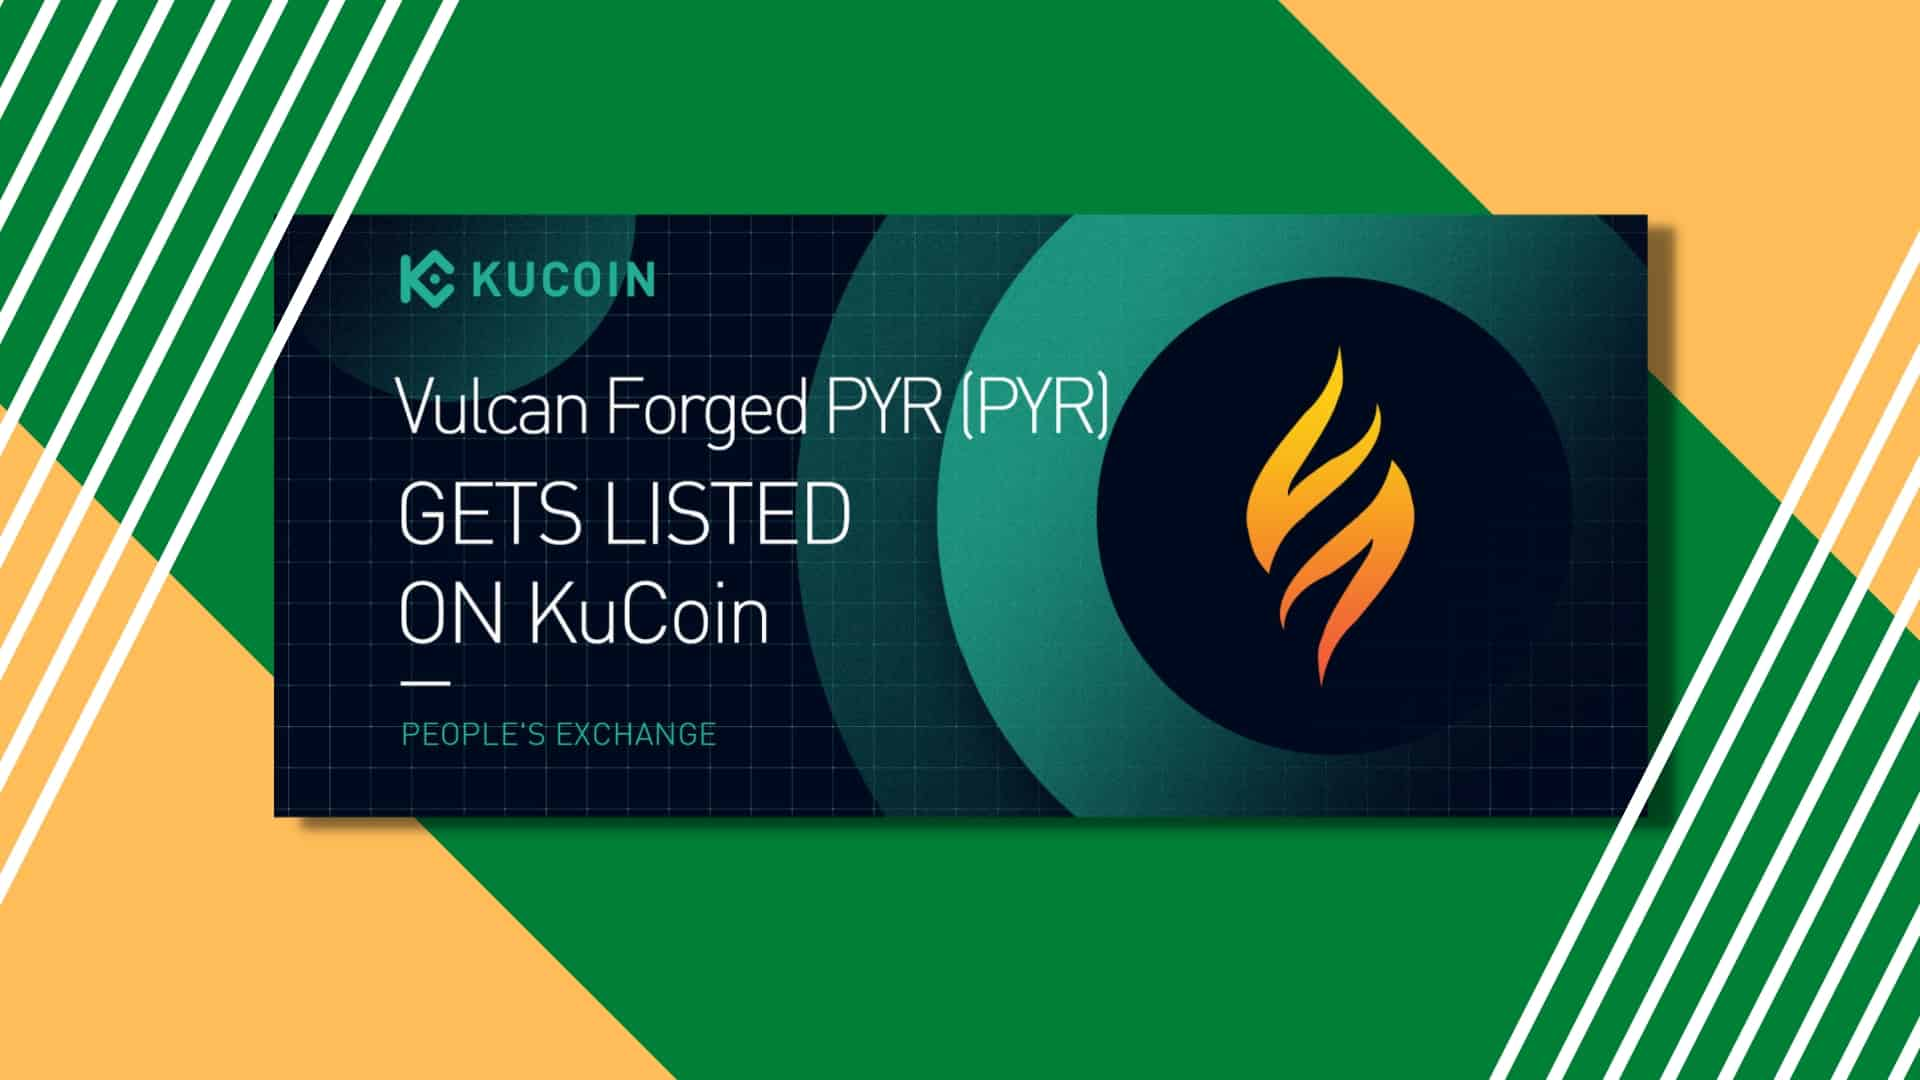 Vulcan Forged PYR Gets listed on KuCoin